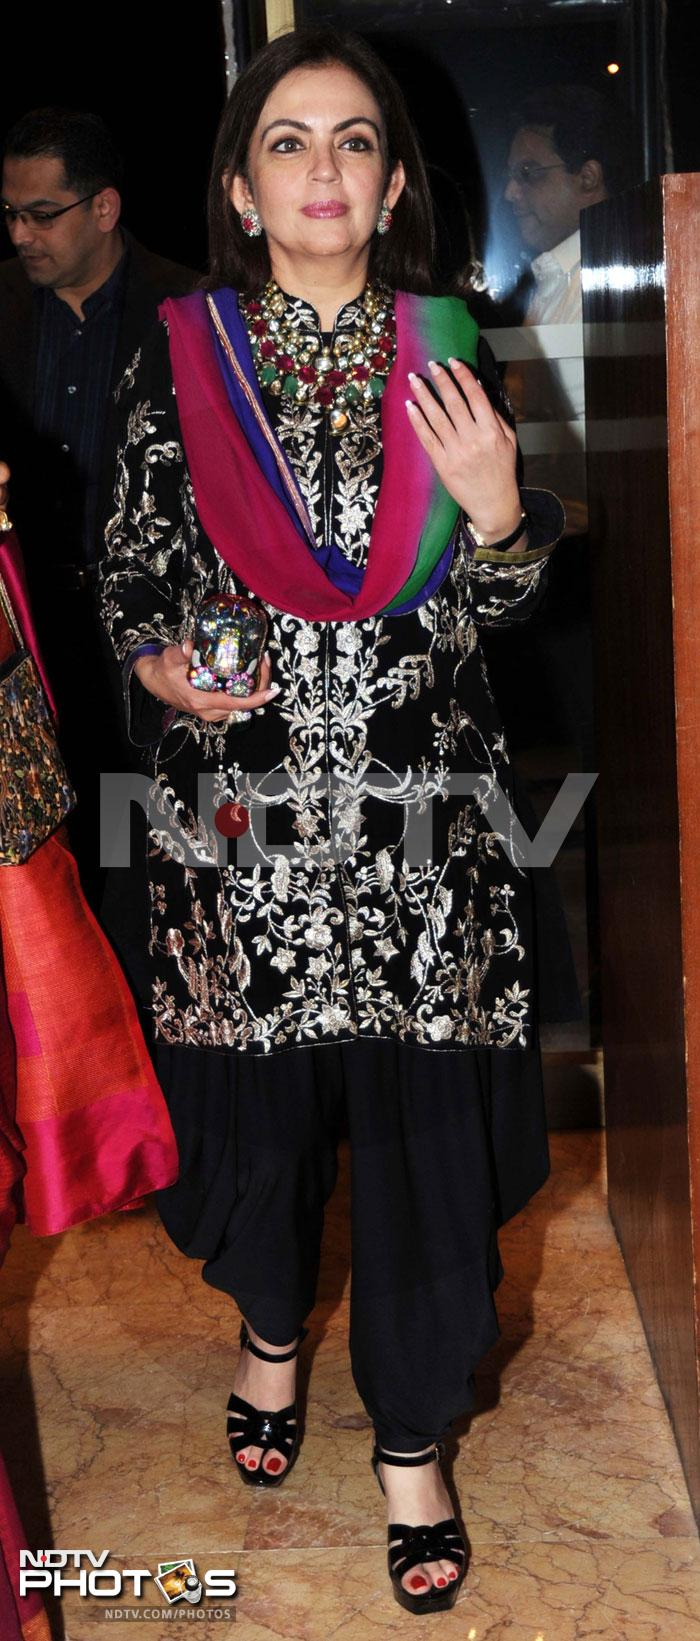 Spotted: Nita Ambani at the Business Awards